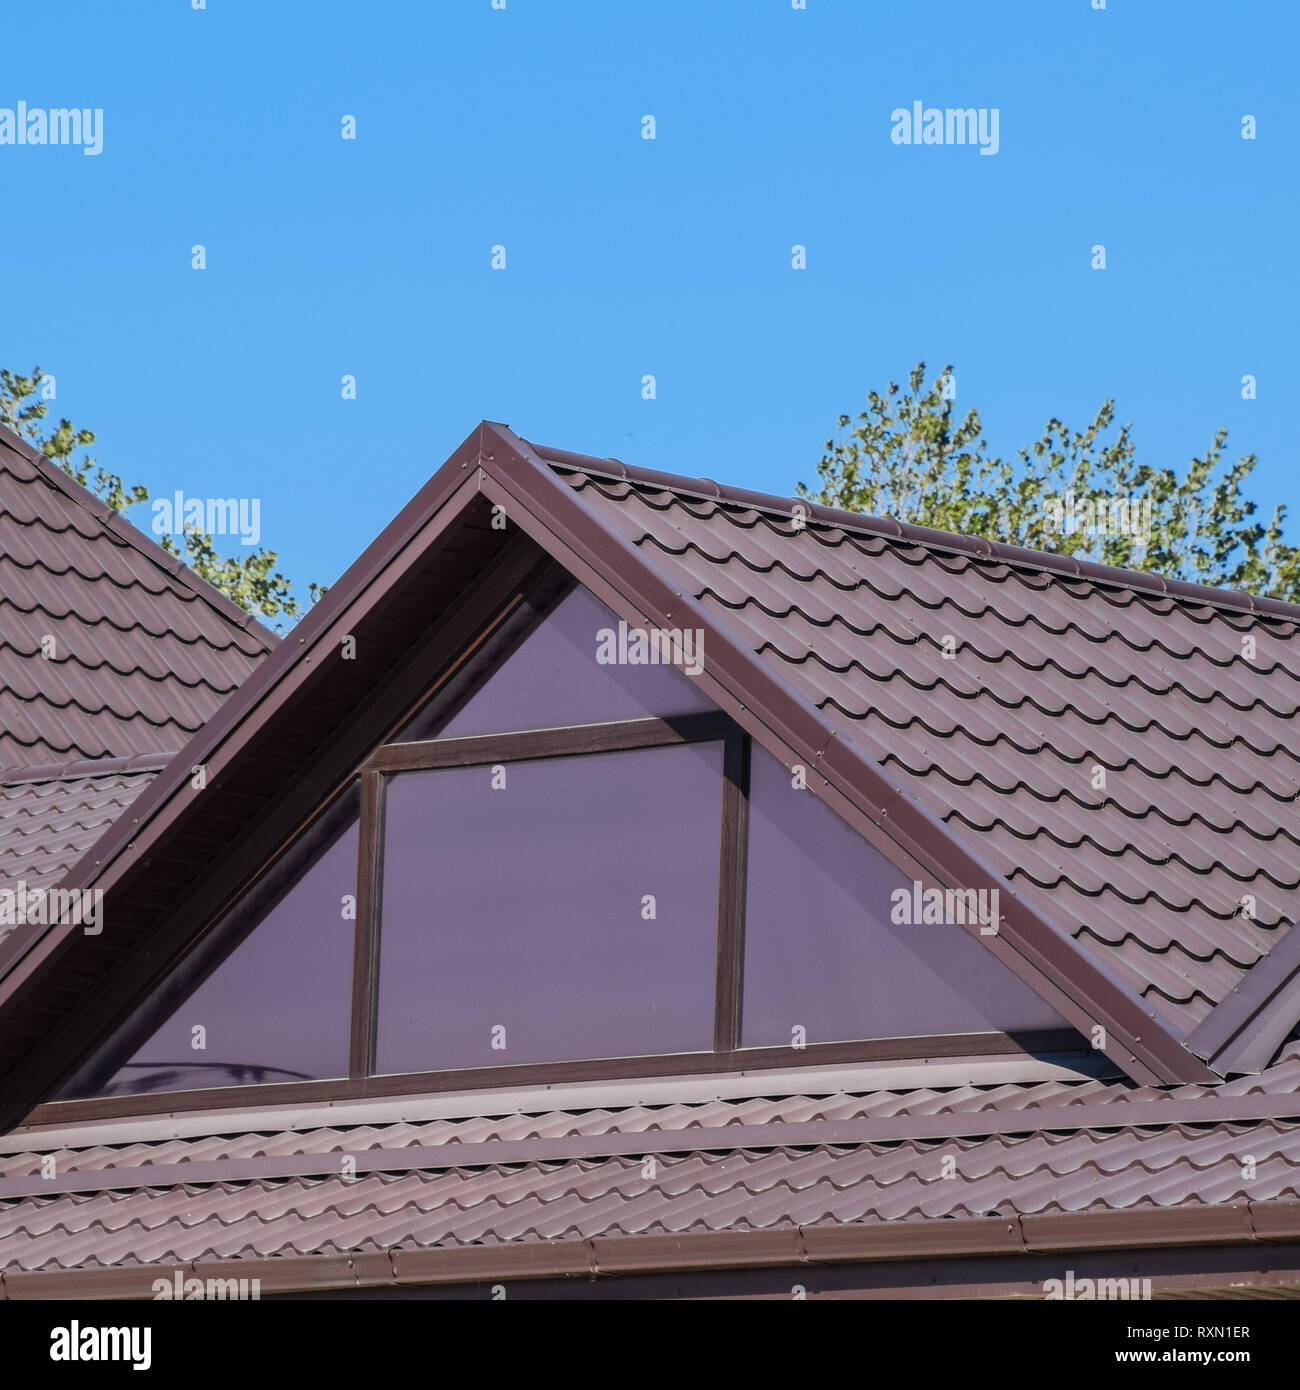 House With Plastic Windows And A Brown Roof Of Corrugated Sheet Roofing Of Metal Profile Wavy Shape On The House With Plastic Windows Stock Photo Alamy